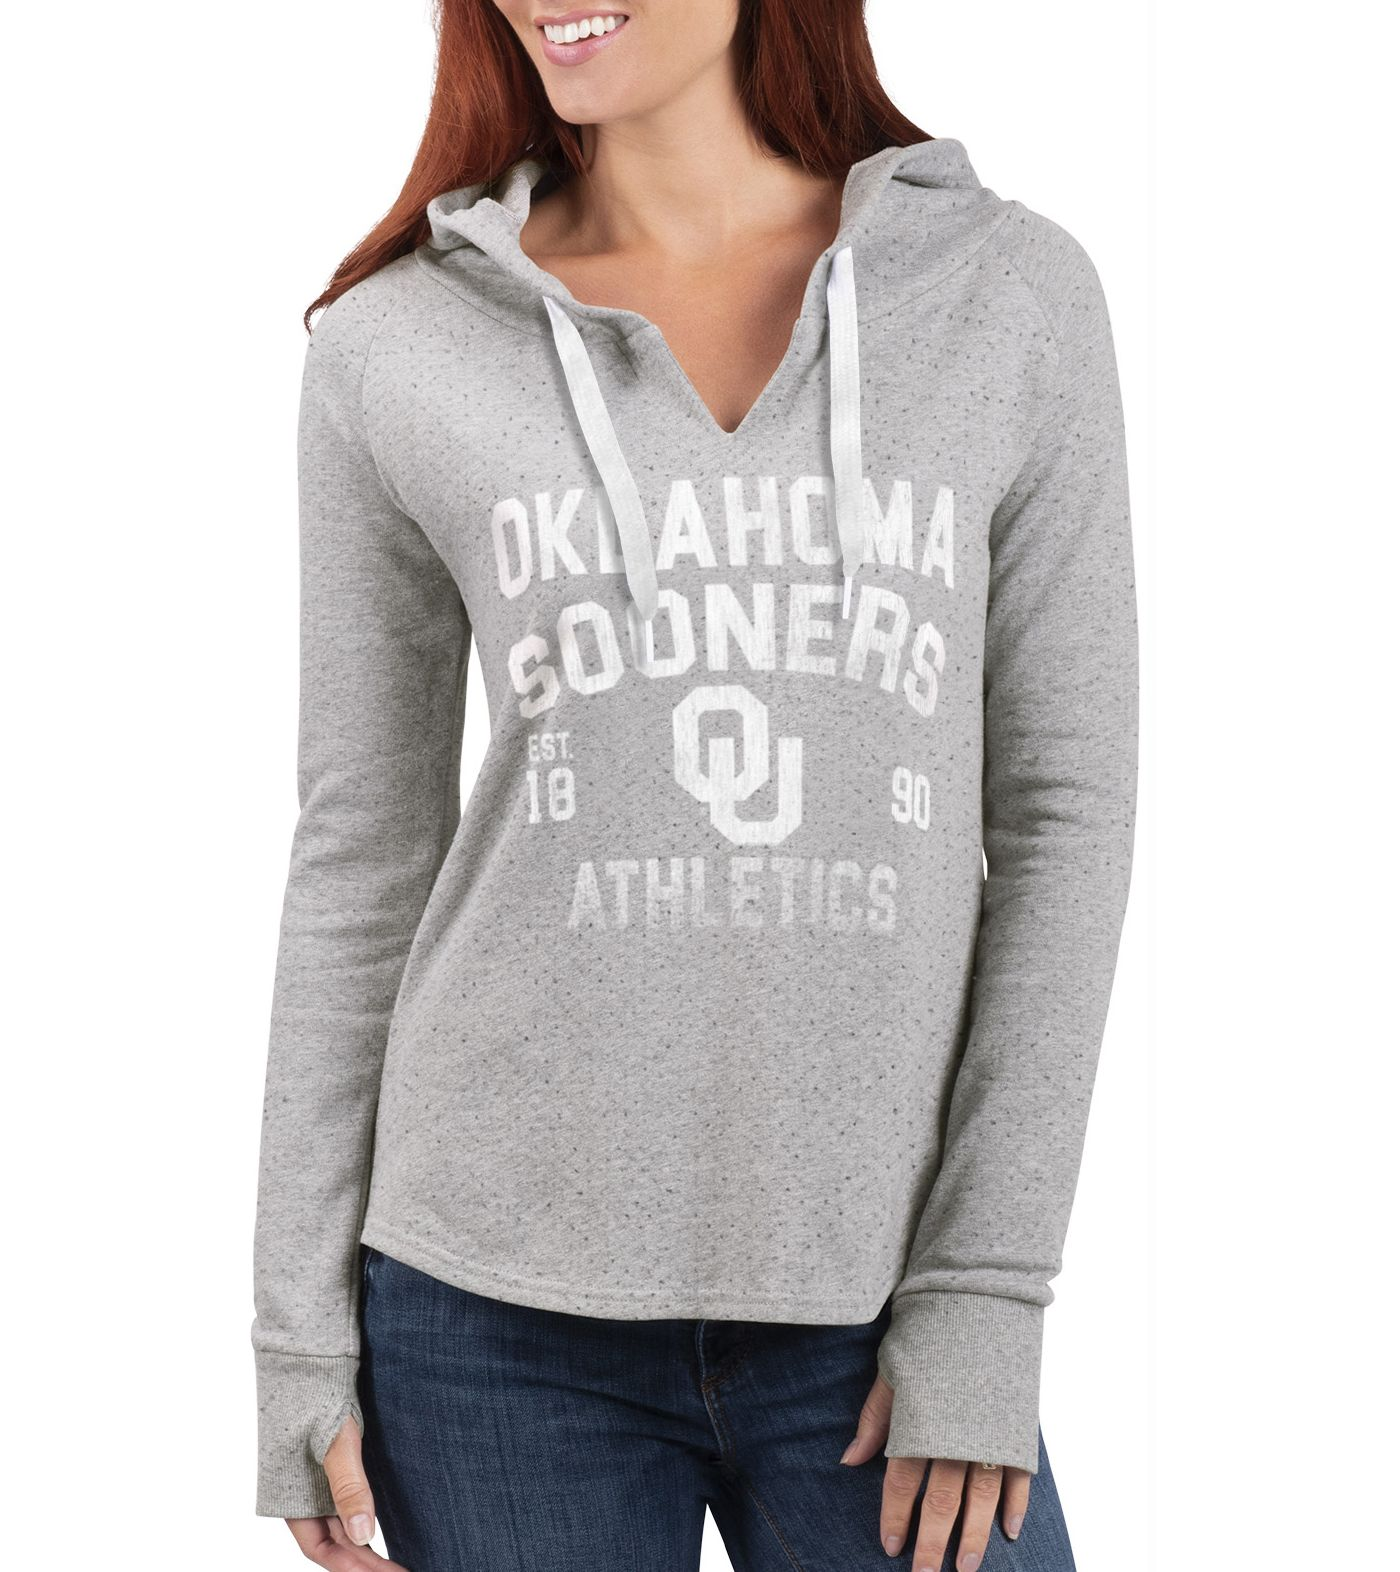 G-III For Her Women's Oklahoma Sooners Grey Touchdown Pullover Hoodie